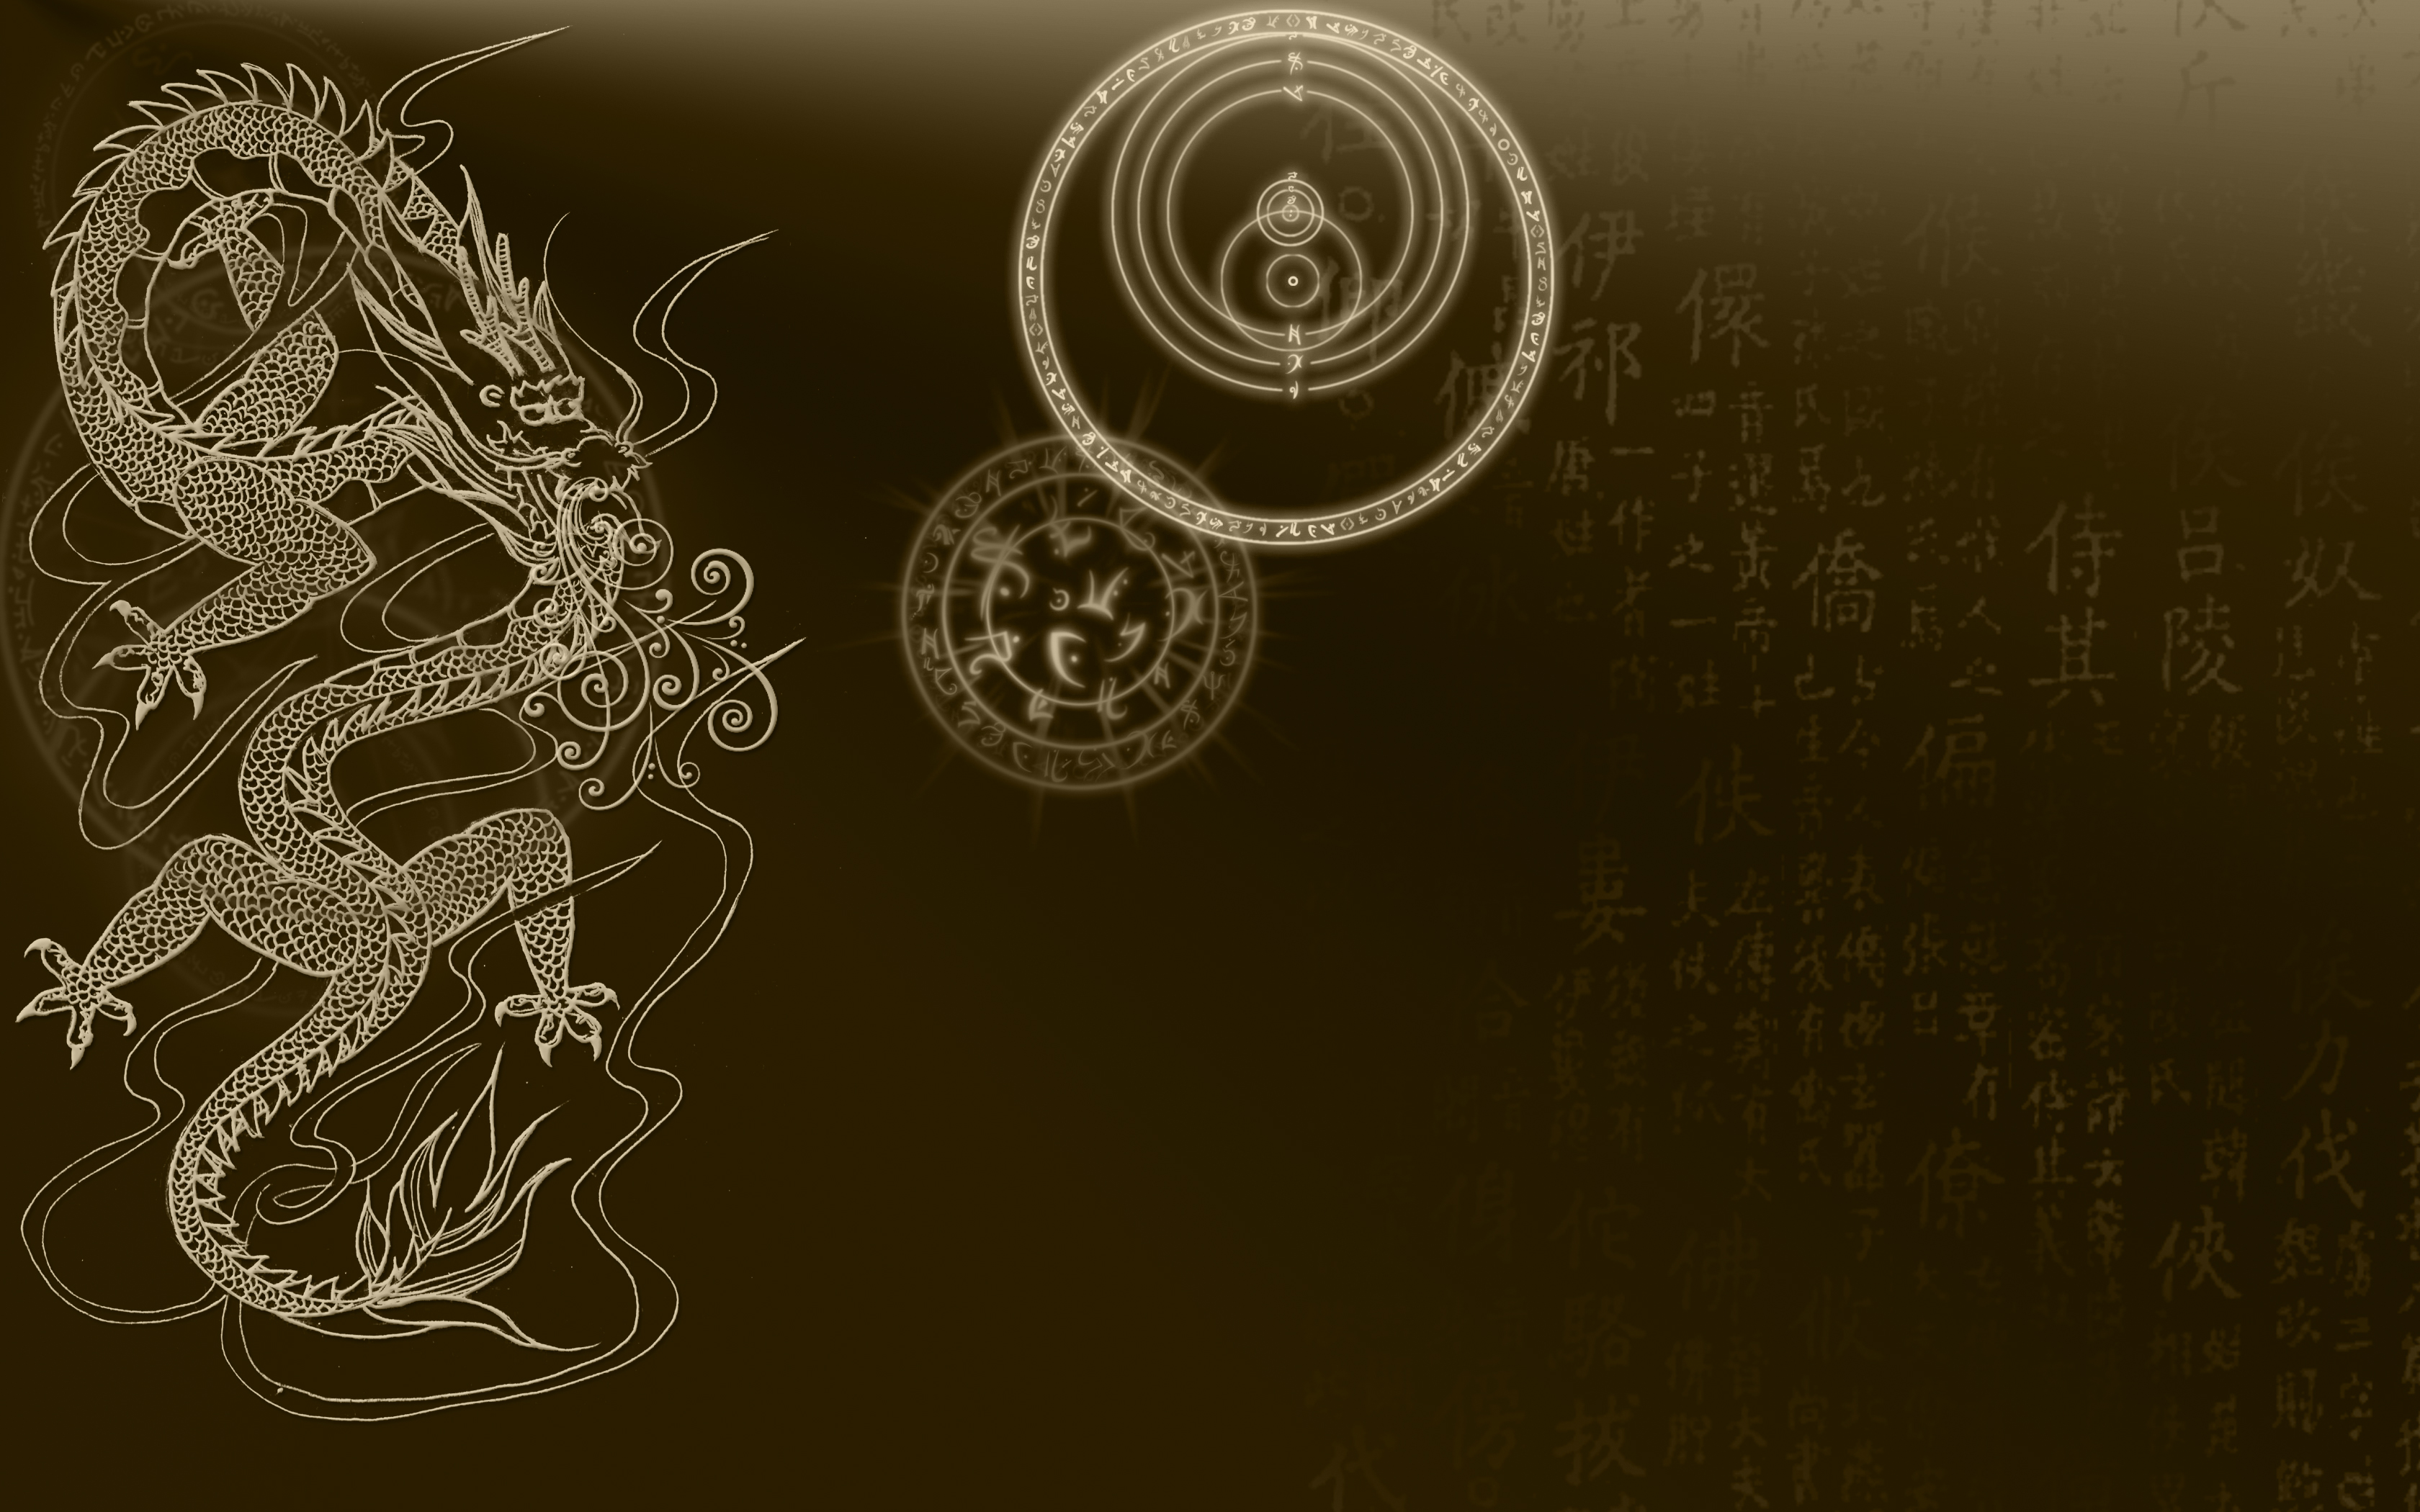 Chinese Dragons wallpapers Chinese Dragons background 3360x2100